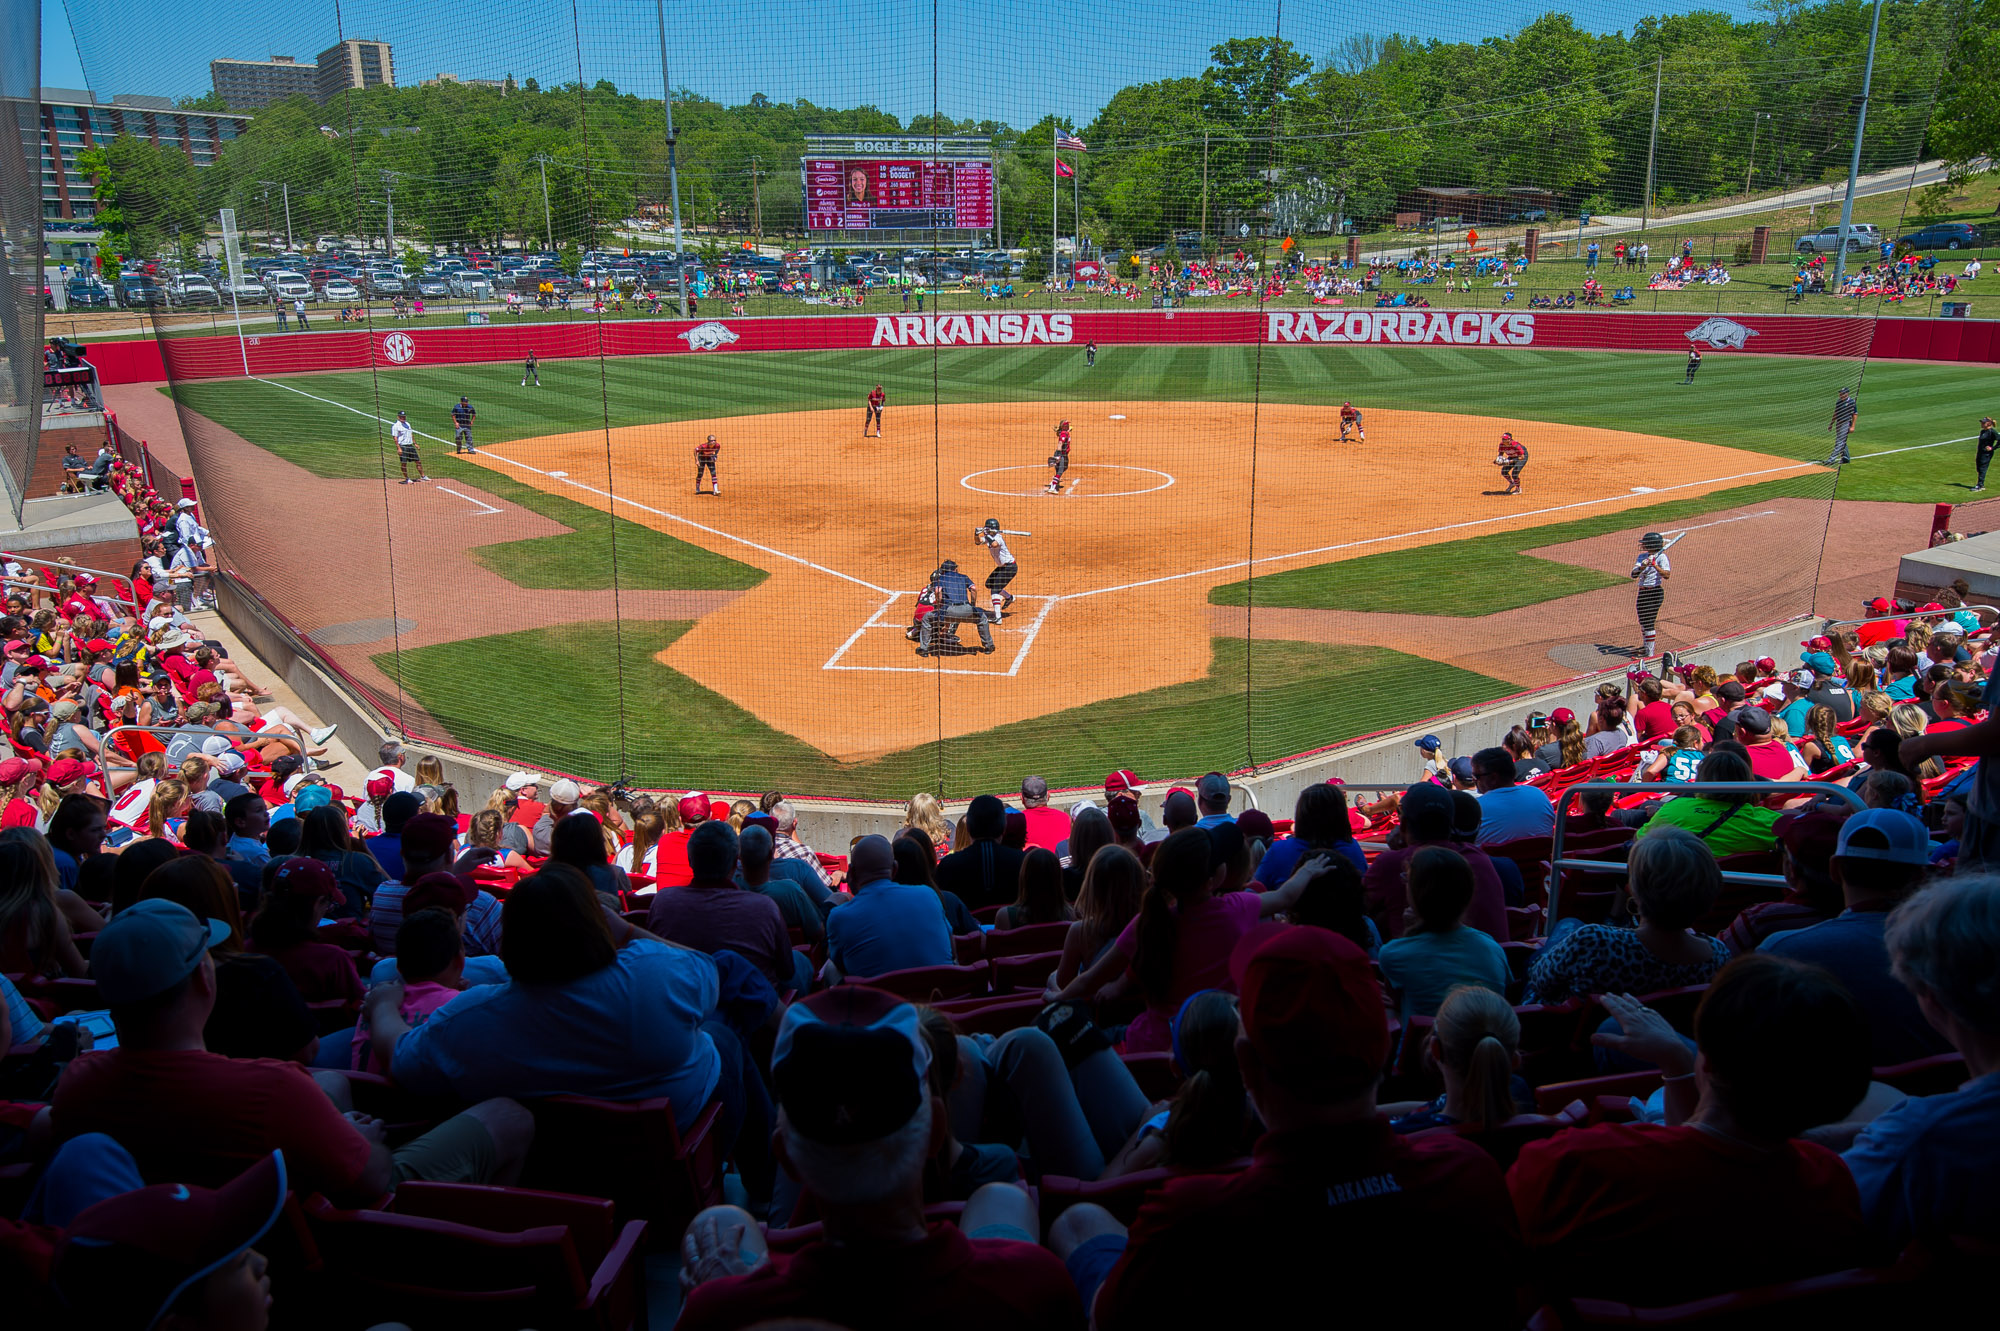 arkansas razorbacks softball stadium